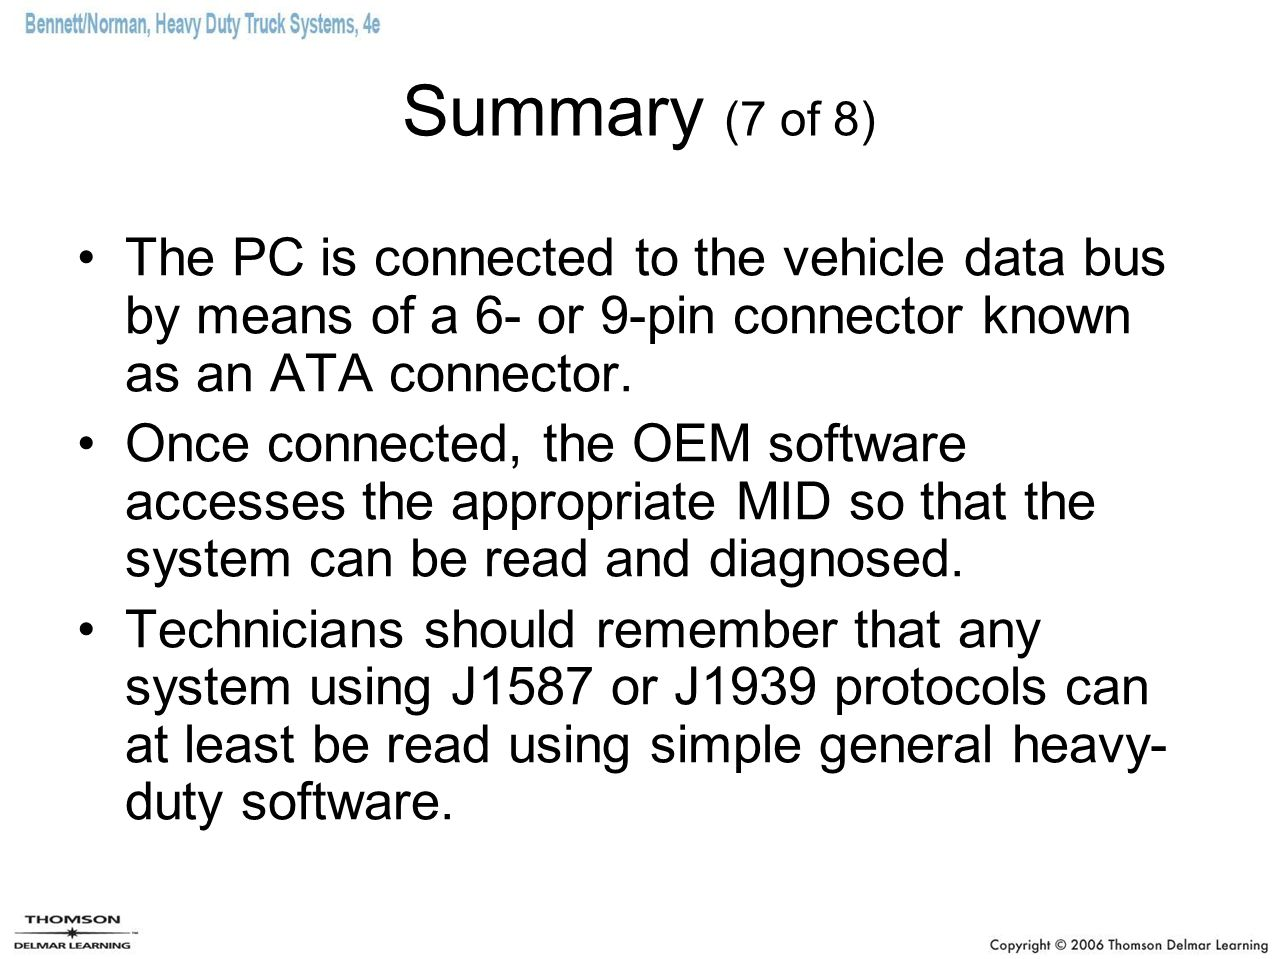 Summary (7 of 8) The PC is connected to the vehicle data bus by means of a 6- or 9-pin connector known as an ATA connector. Once connected, the OEM so